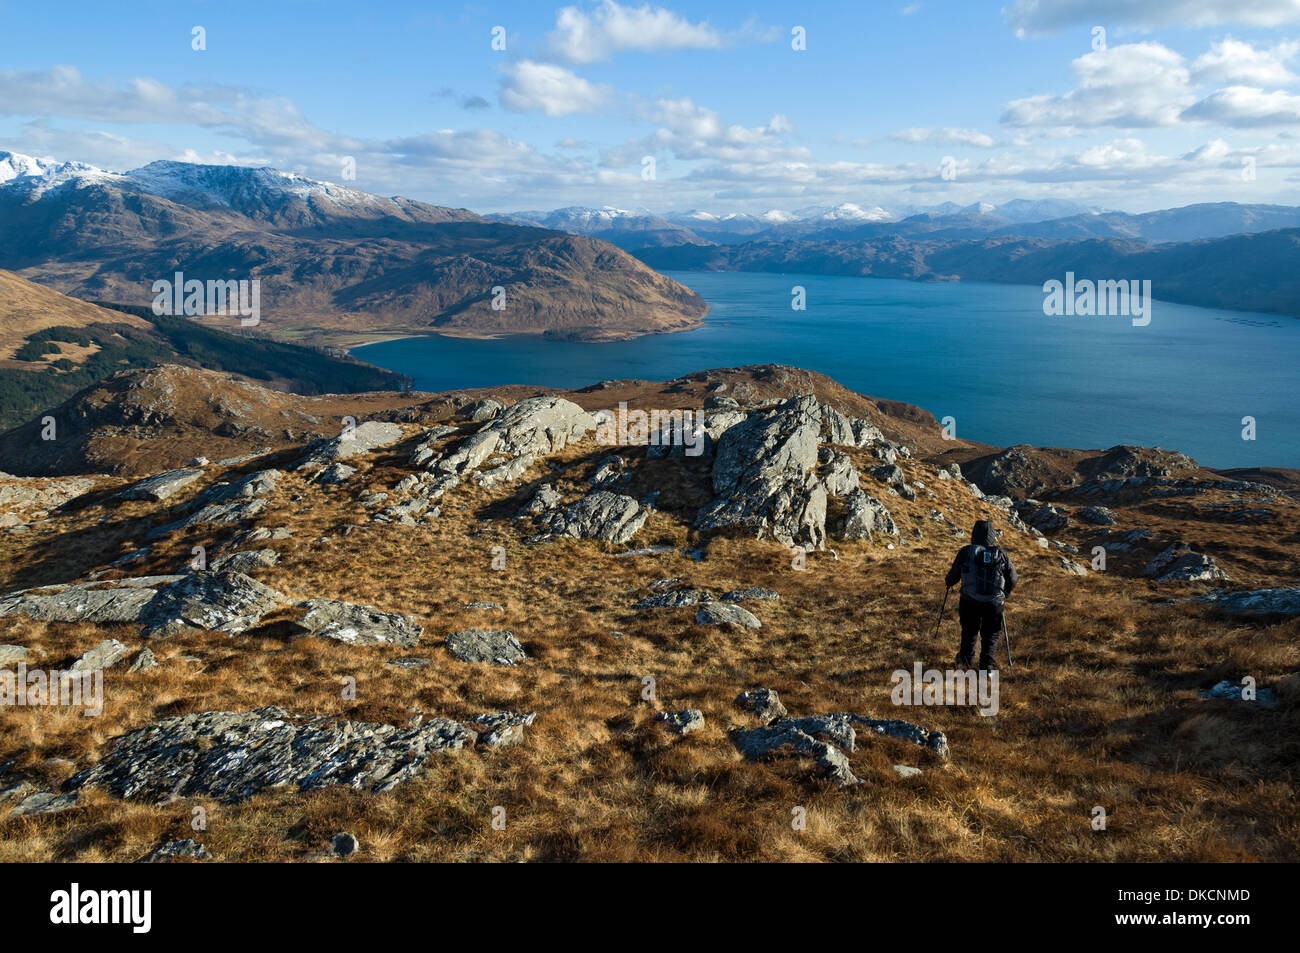 inverie-bay-and-loch-nevis-from-beinn-bhreac-in-the-black-hills-range-DKCNMD.jpg